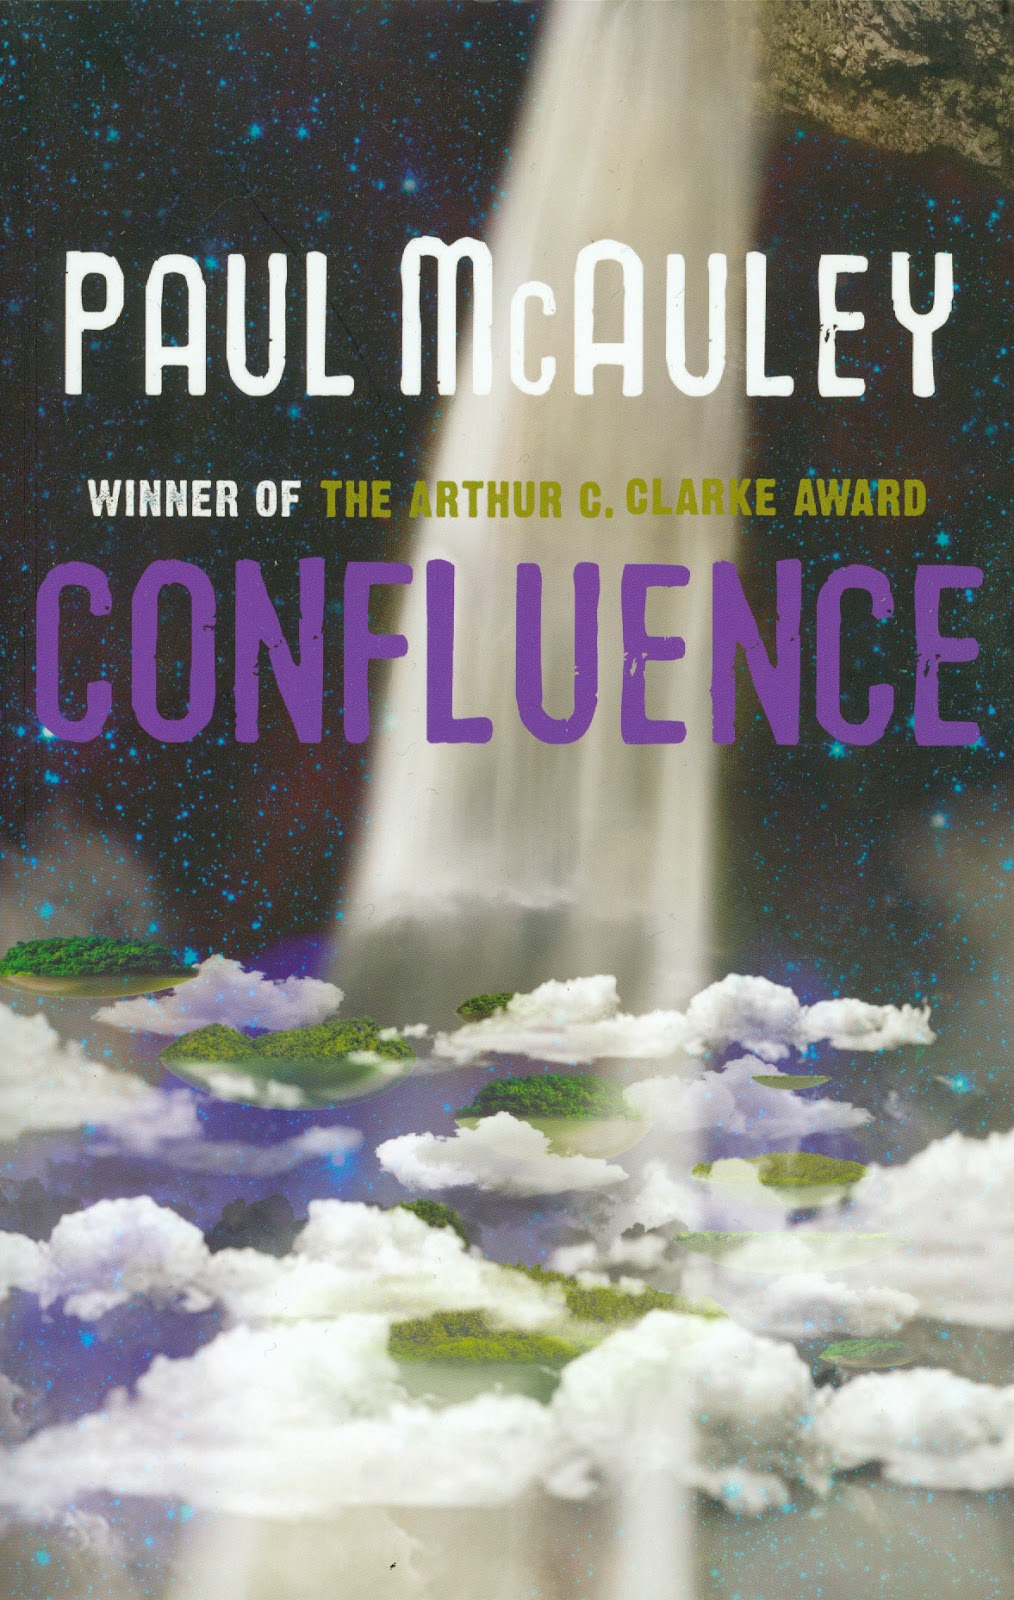 http://www.amazon.co.uk/The-Confluence-Trilogy-Ancients-Shrine/dp/057511939X/ref=sr_1_1?ie=UTF8&qid=1366986562&sr=8-1&keywords=paul+mcauley+confluence